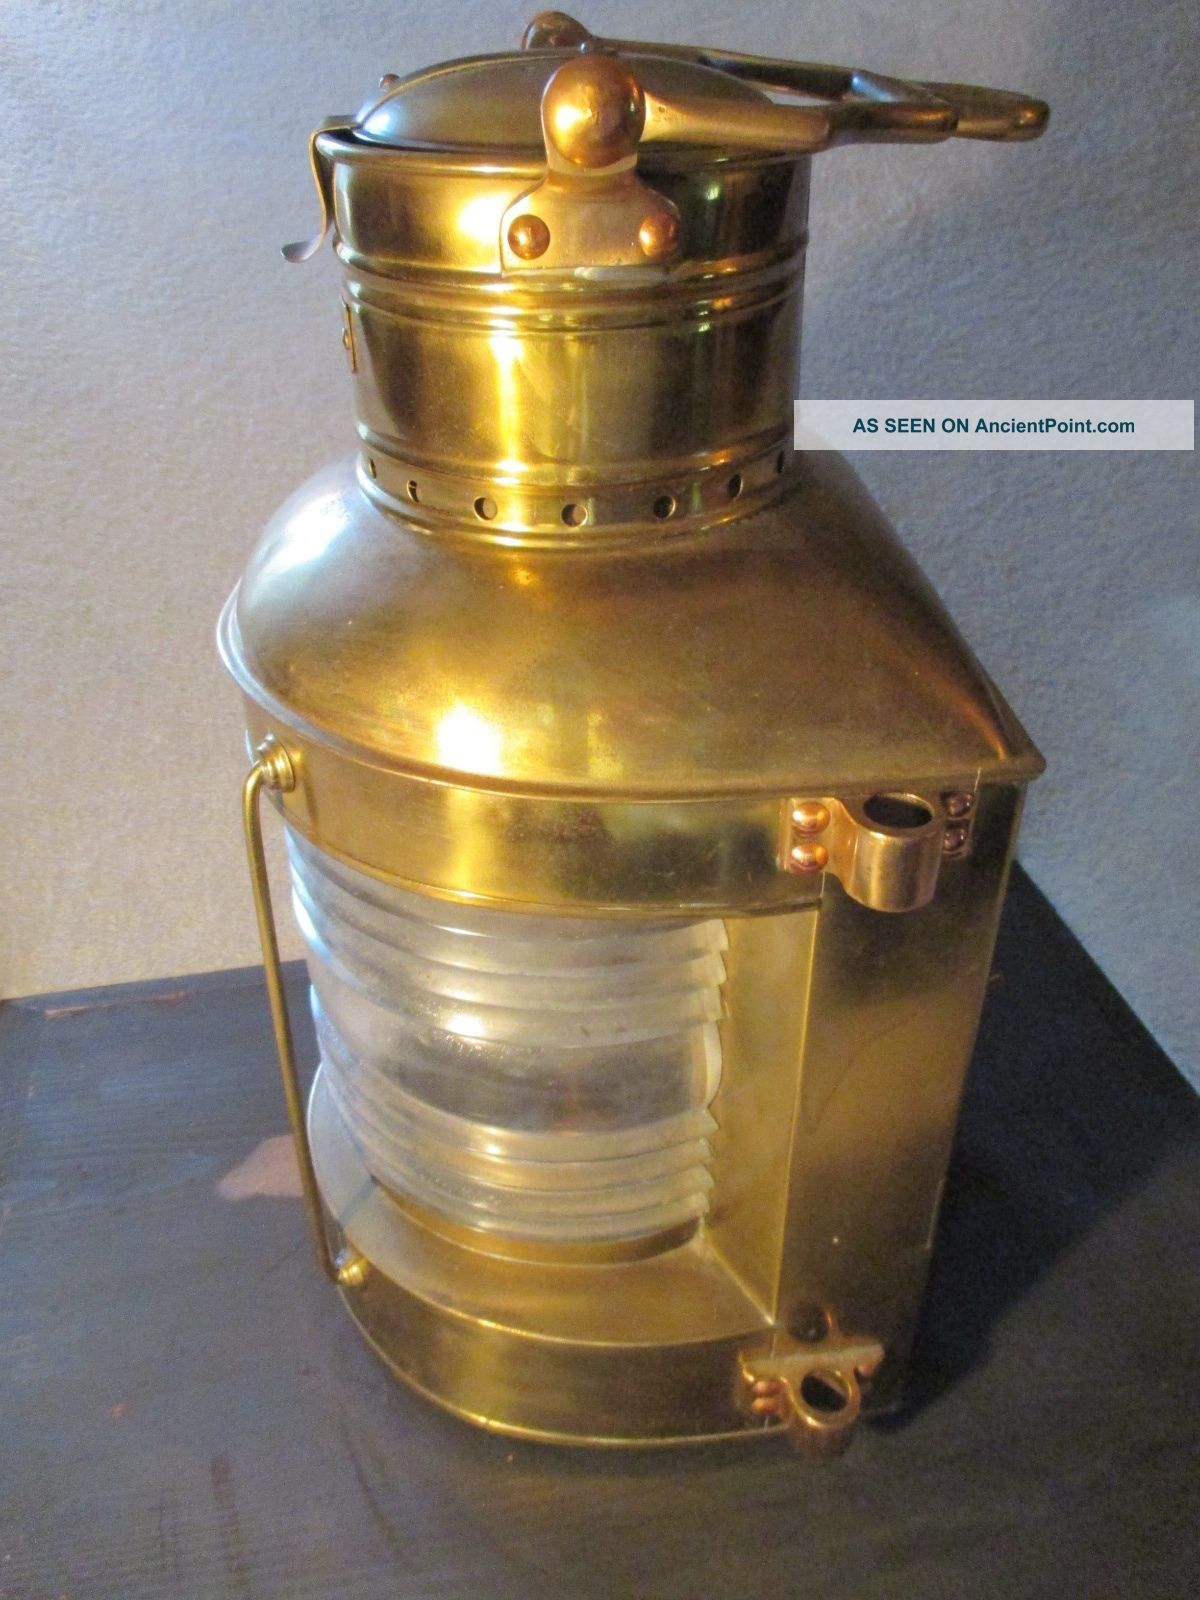 Antique Russell & Stoll Brass Nautical Ship ' S Oil Lamp.  Fresnel Lens On Lantern. Lamps & Lighting photo